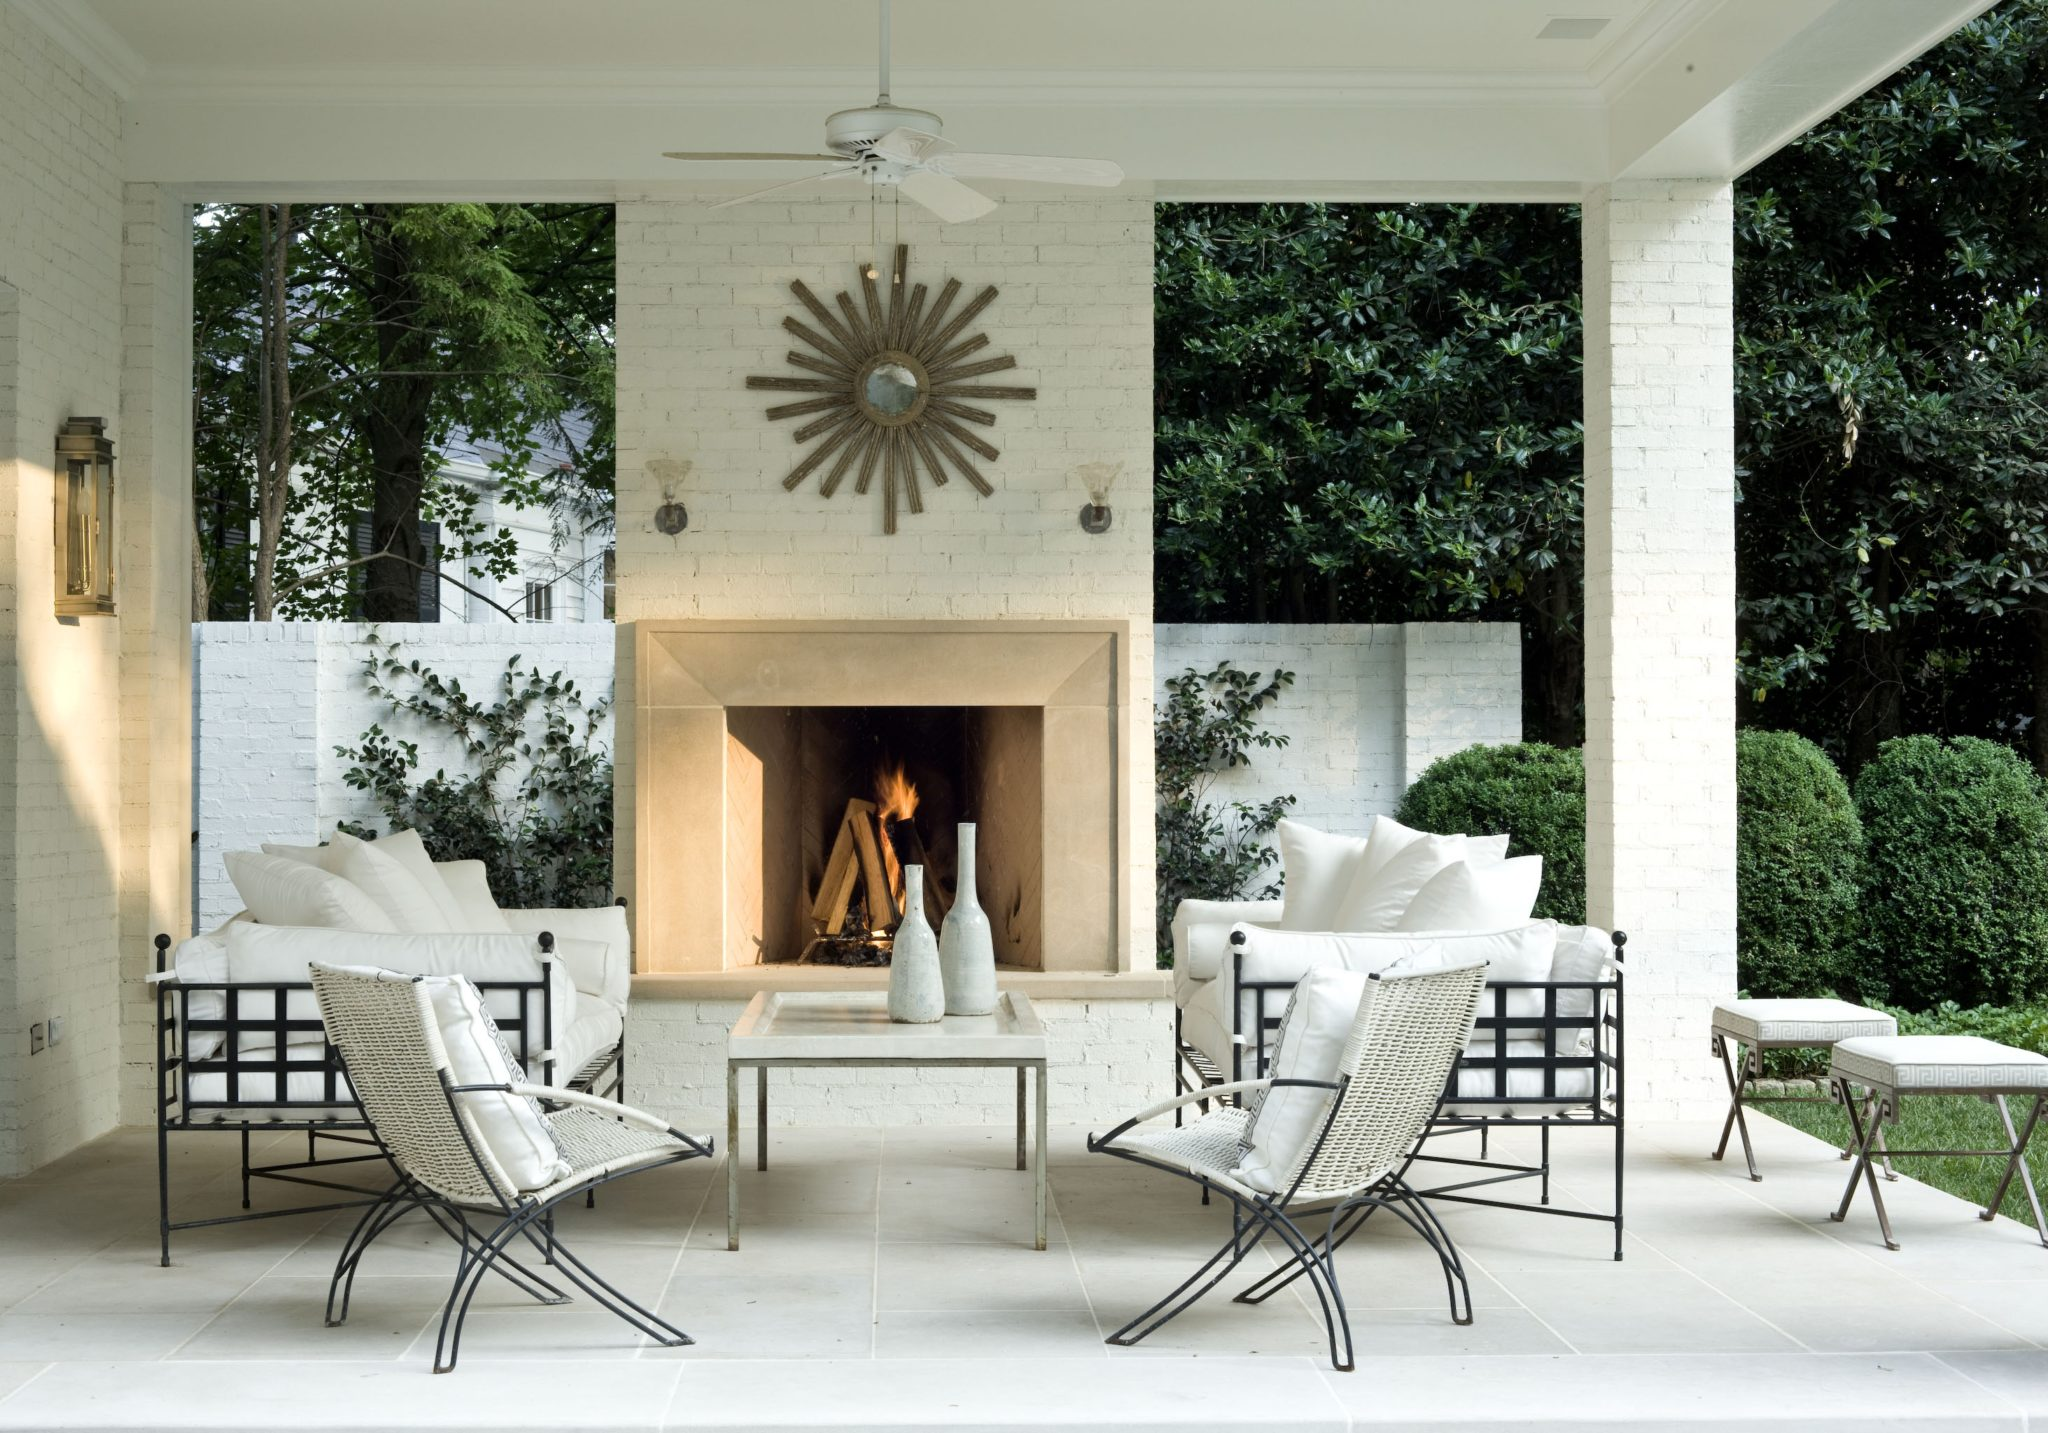 A patio with an outdoor fireplace anddesigns by Suzanne Kasler Interiors